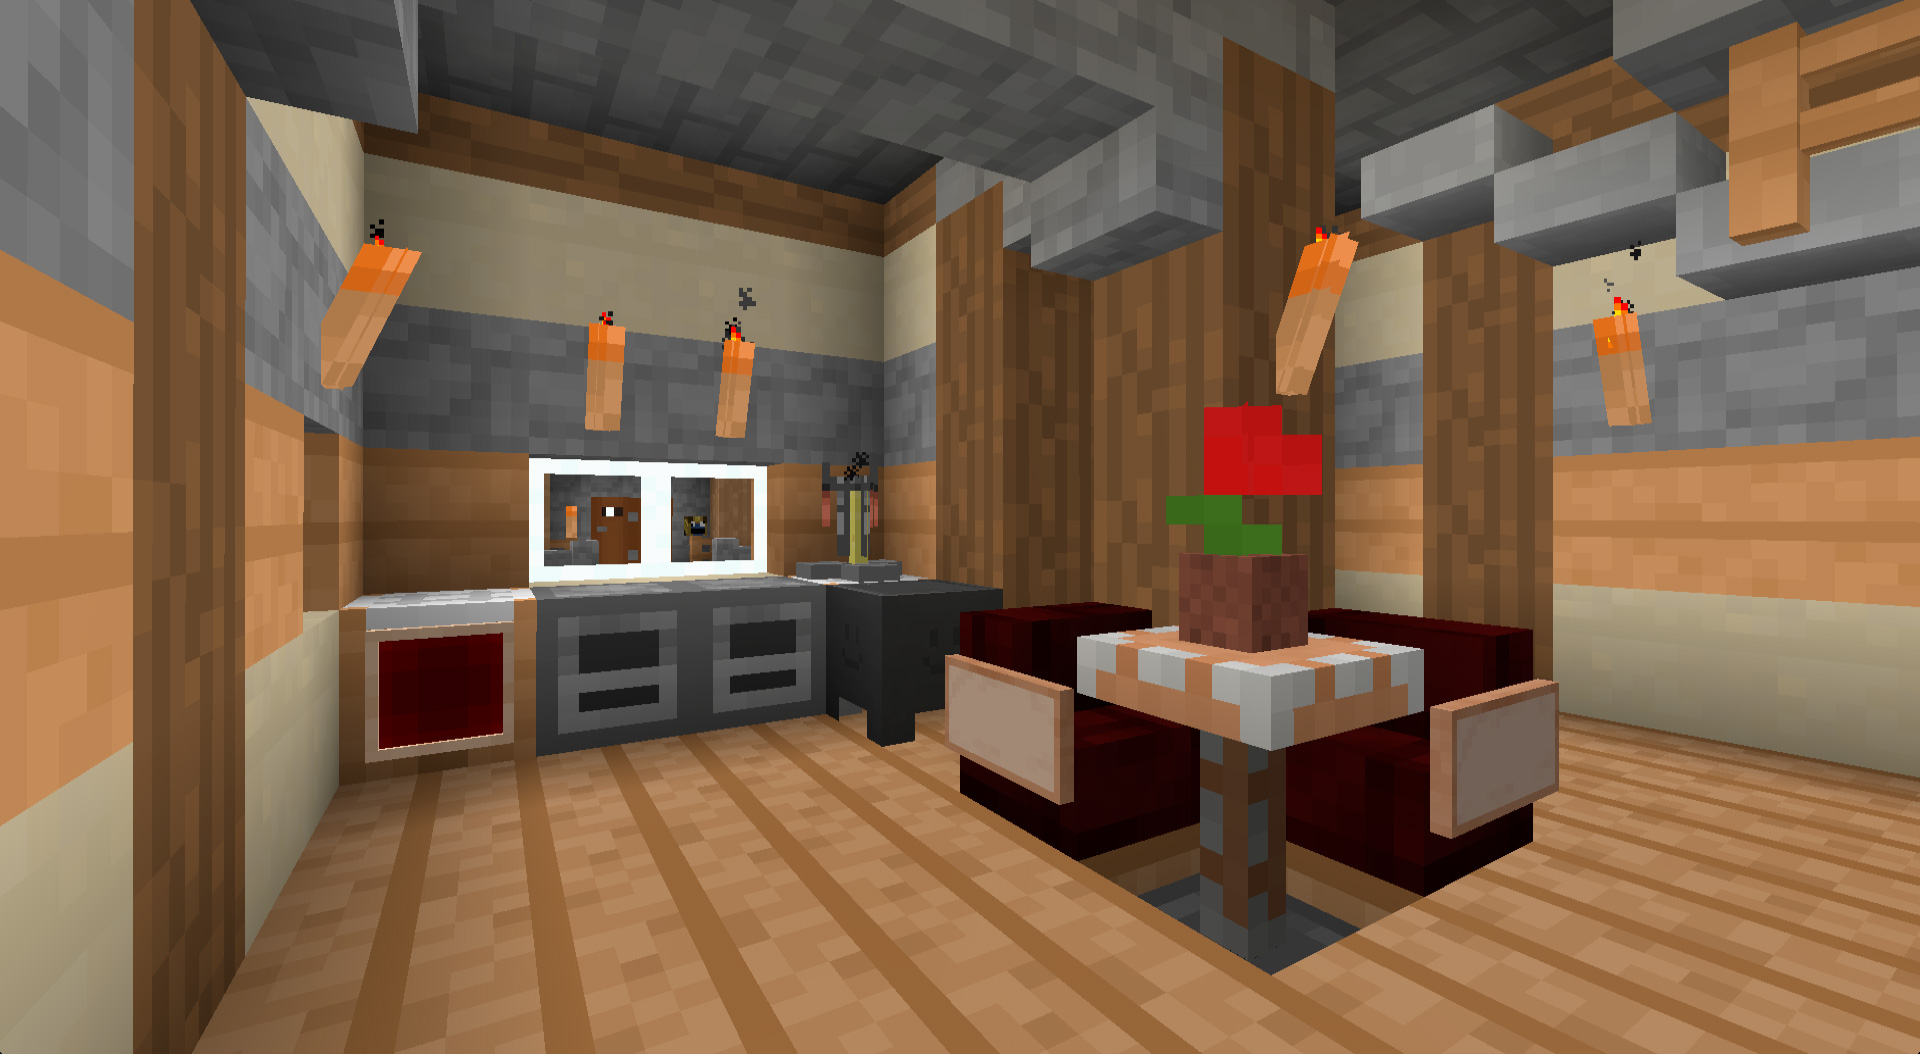 Minecraft Xbox's Update 12 Brings Texture Pack Support | USgamer